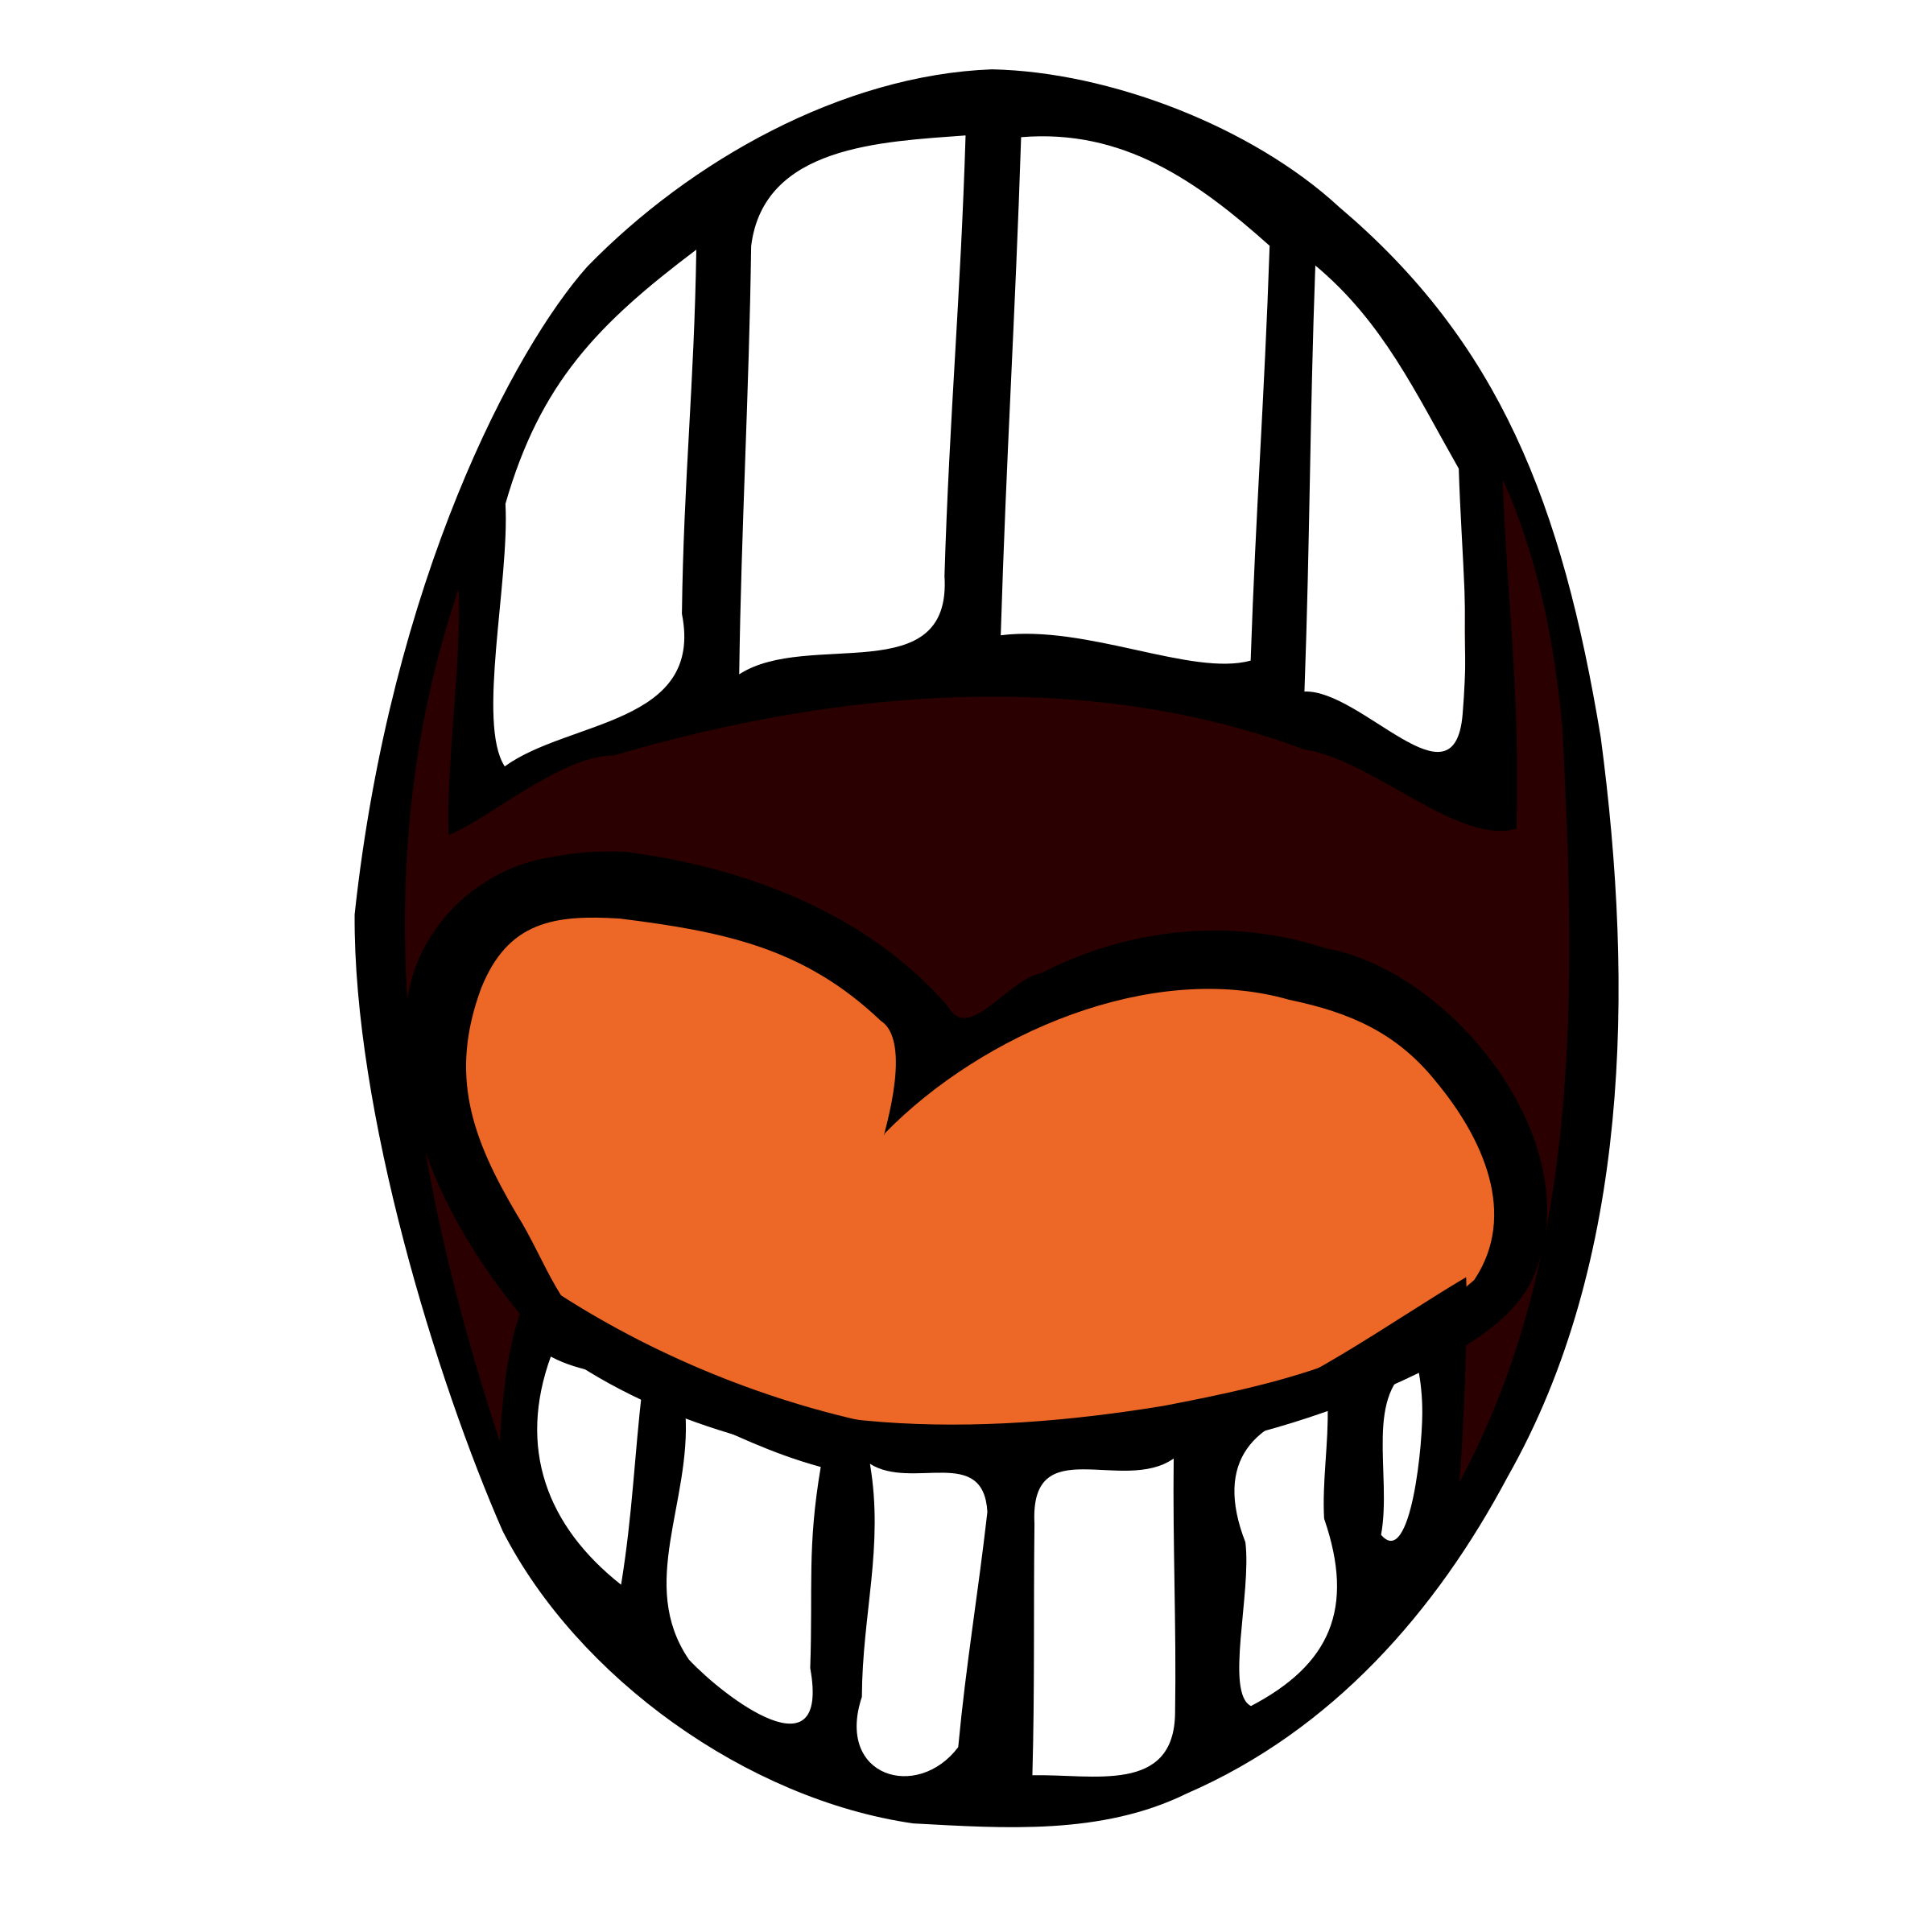 Open mouth png. Icons free and downloads